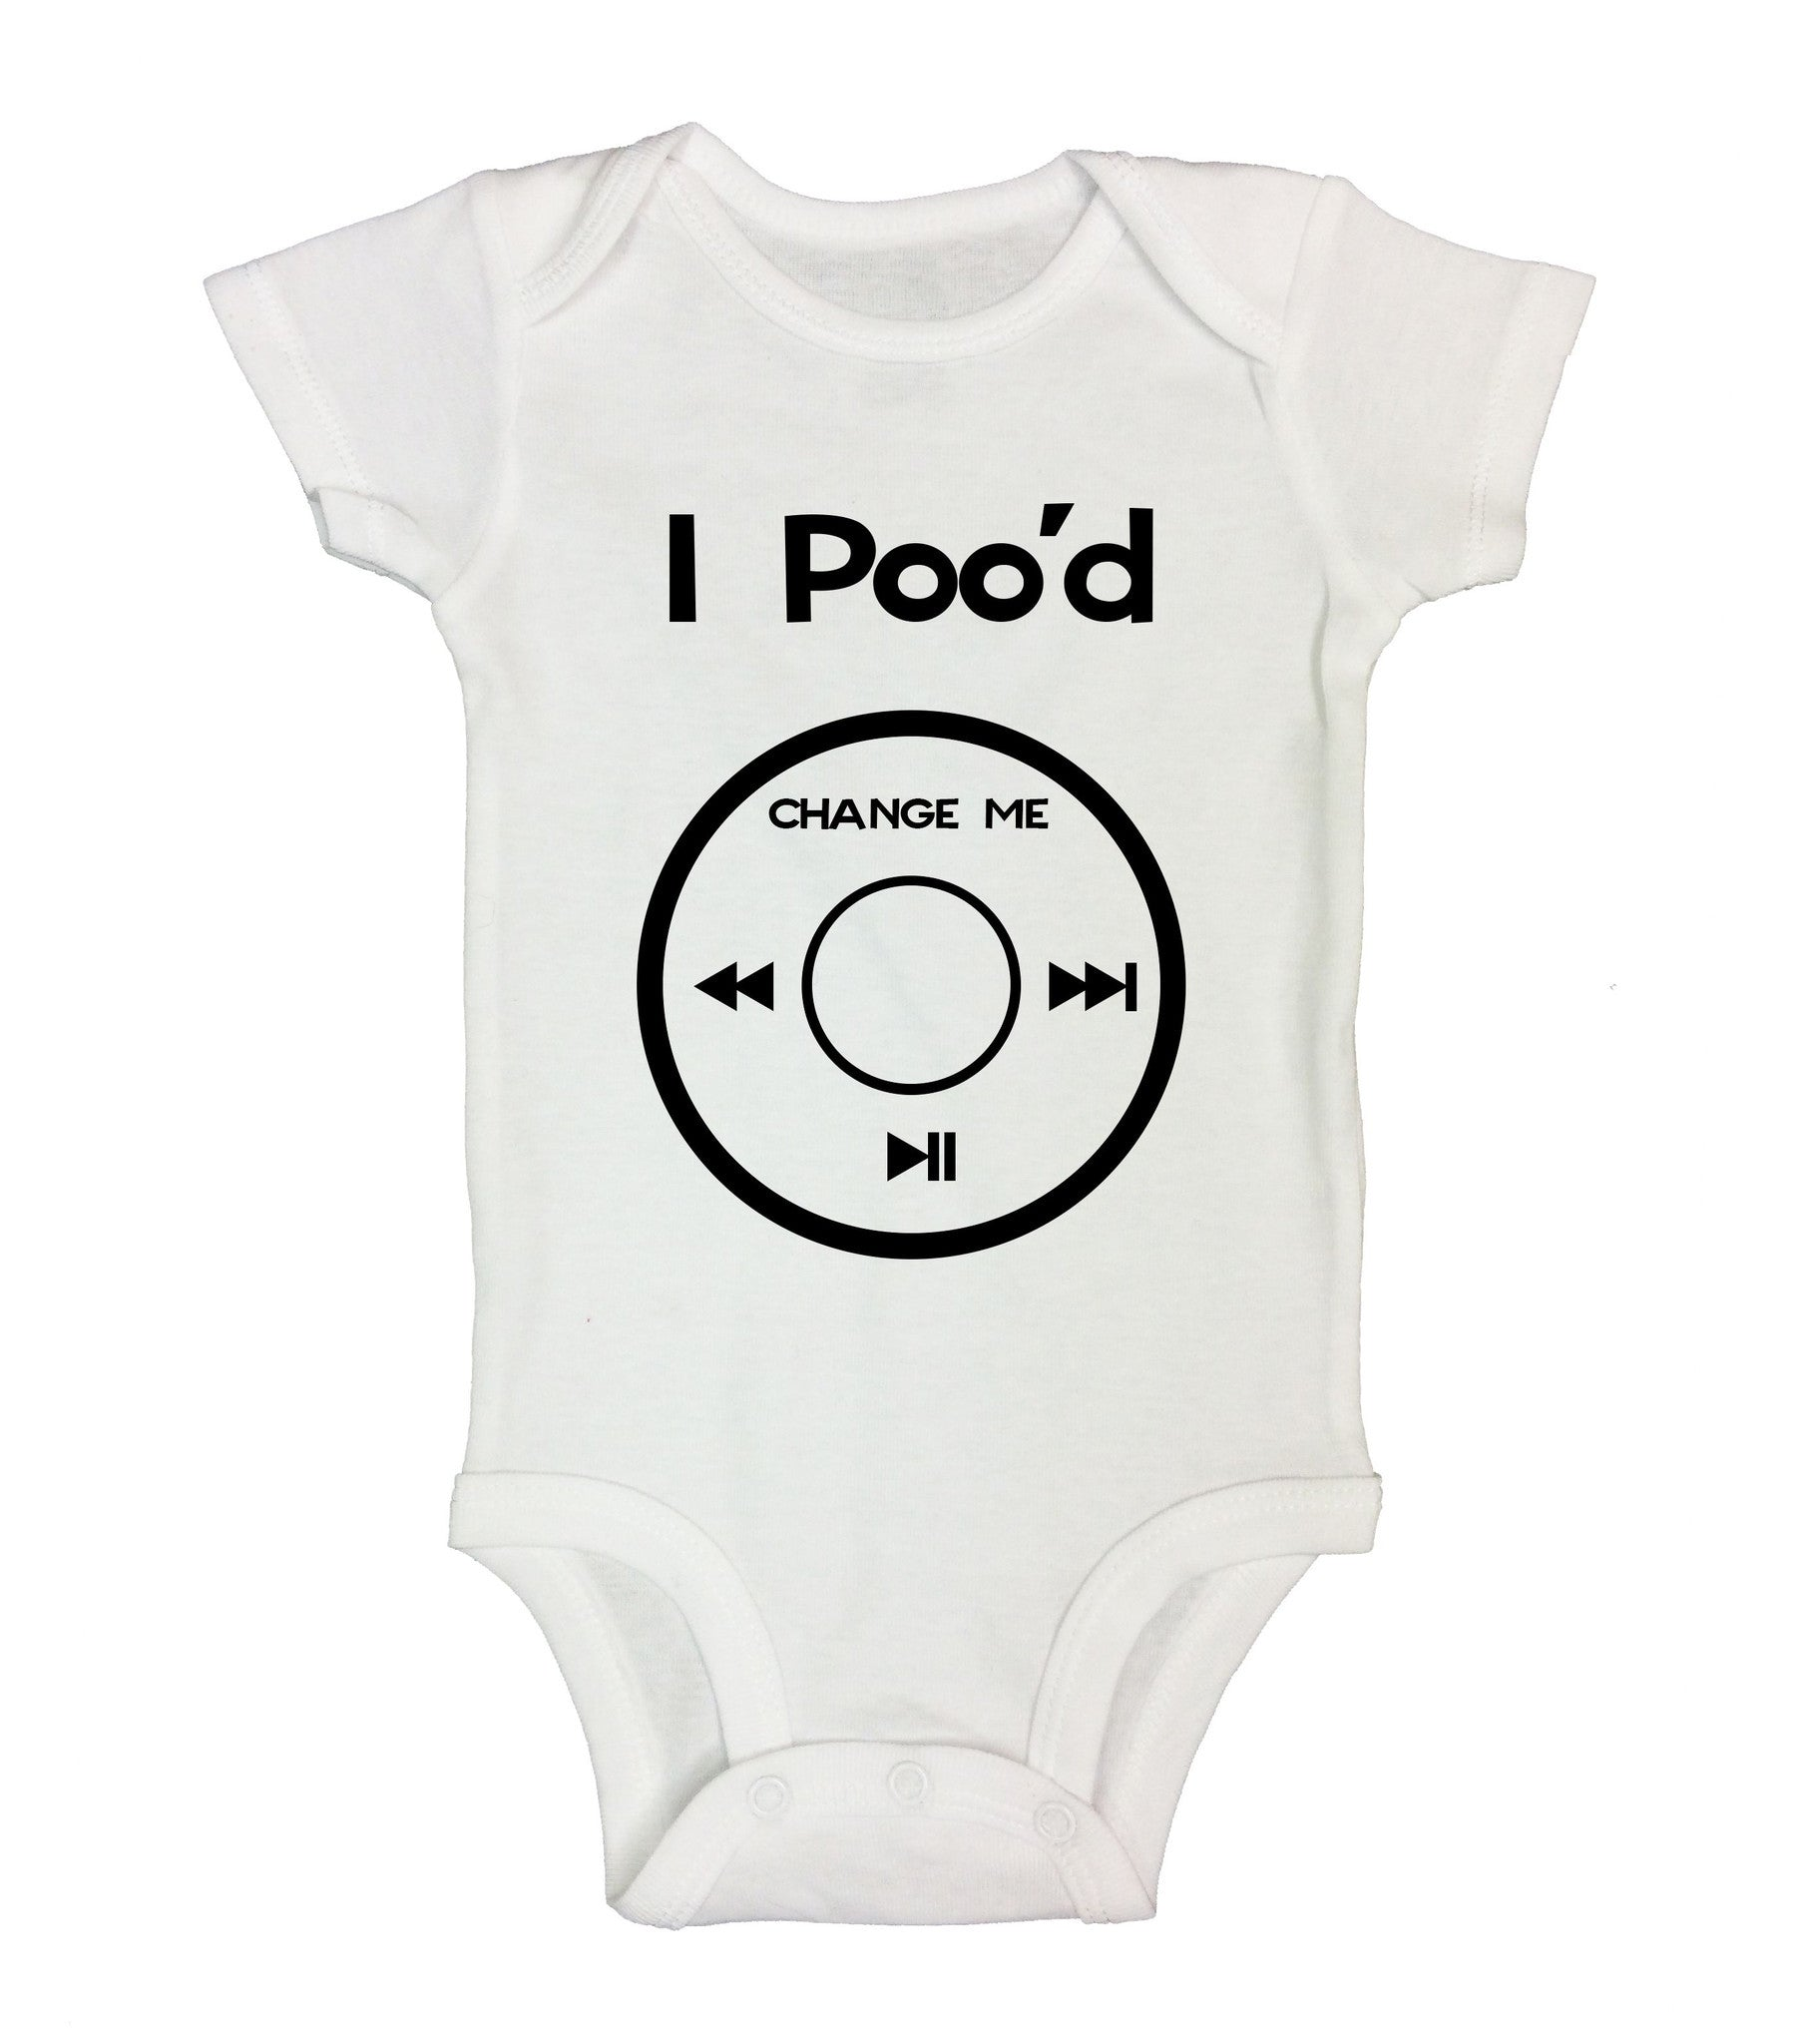 I Poo'd Change Me Funny Kids Onesie - B41 - Funny Shirts Tank Tops Burnouts and Triblends  - 2